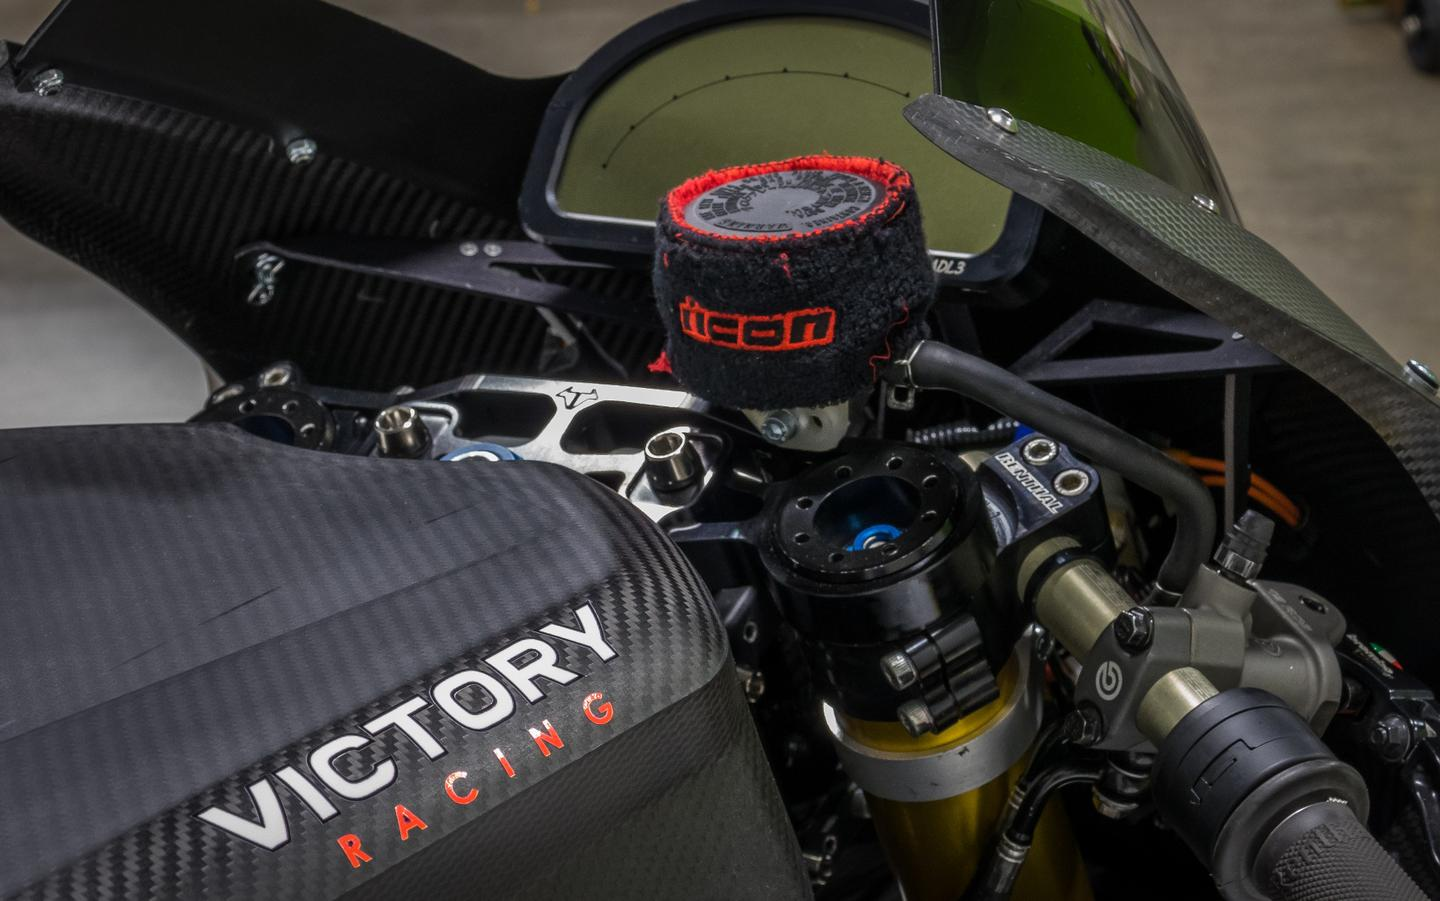 The view for the rider's seat on the Victory RR could easily belong to any world-class superbike (equipped with a Brammo top yoke)